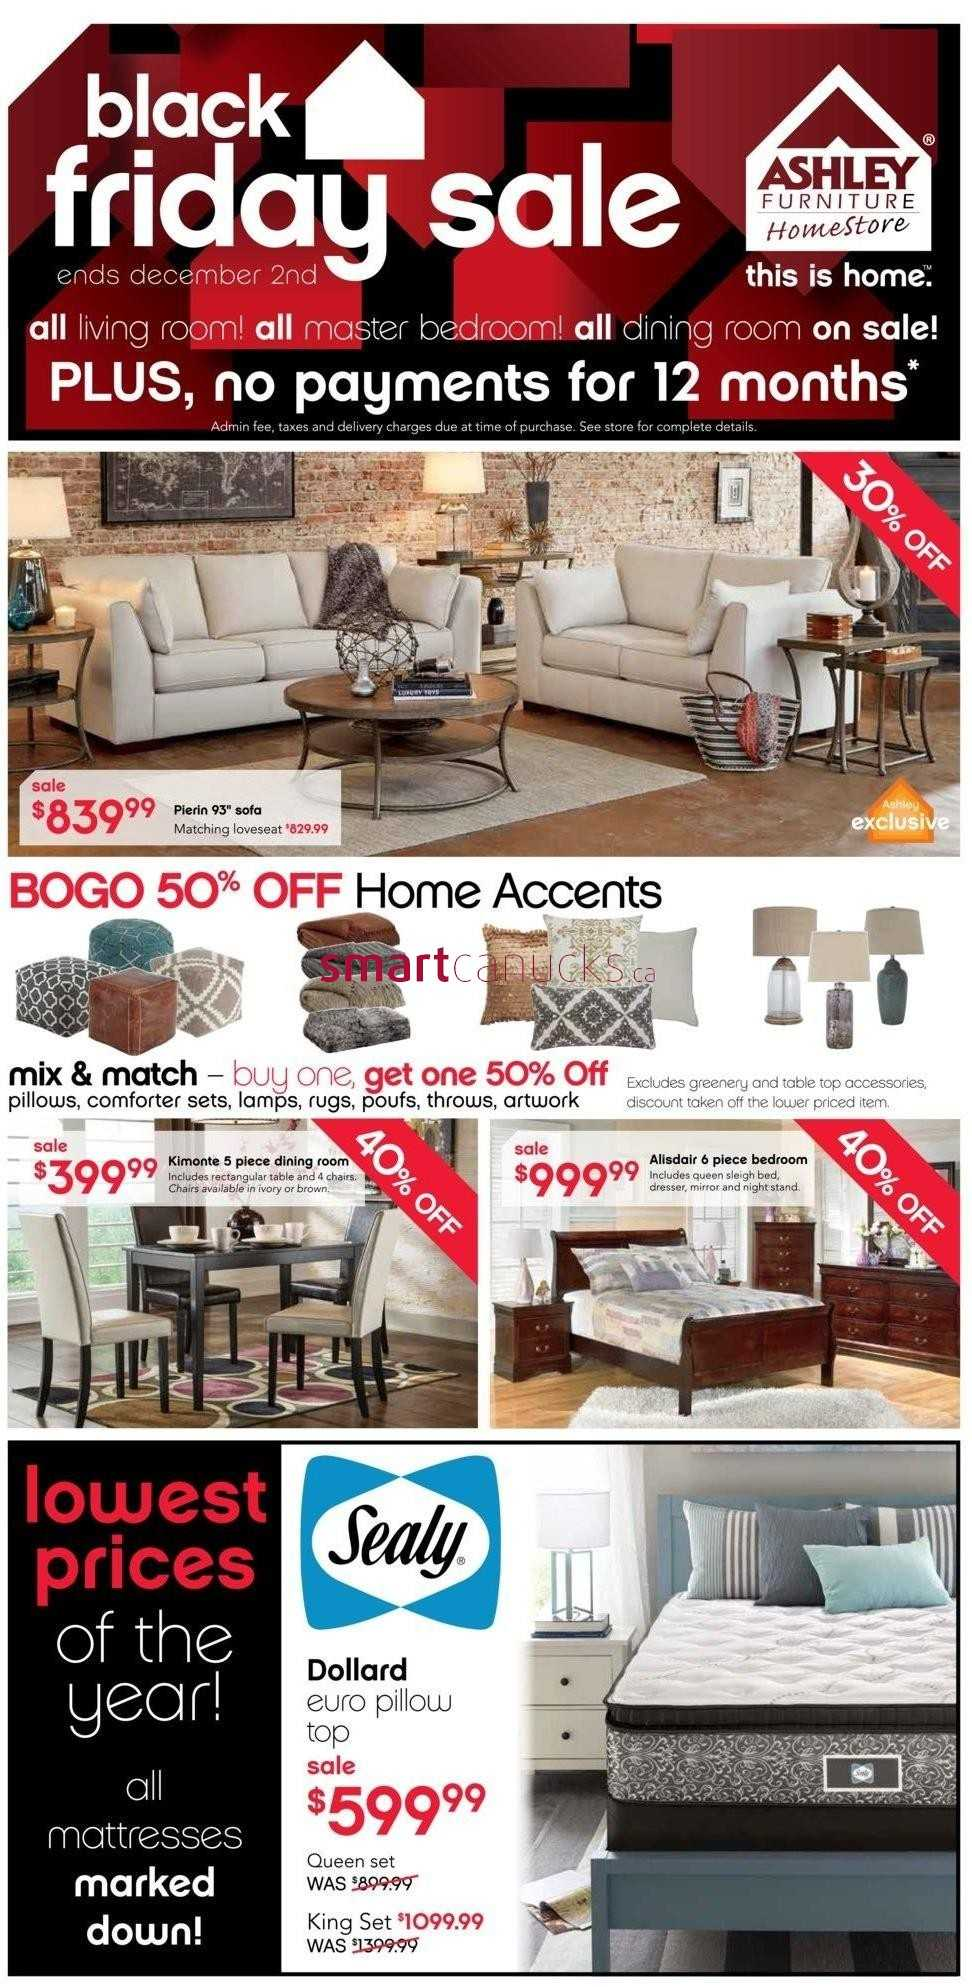 Ashley Furniture Home Store  ON  Black Friday Flyer November 26 to. Black Friday Deals On Ashley Furniture    It s All Furnitures